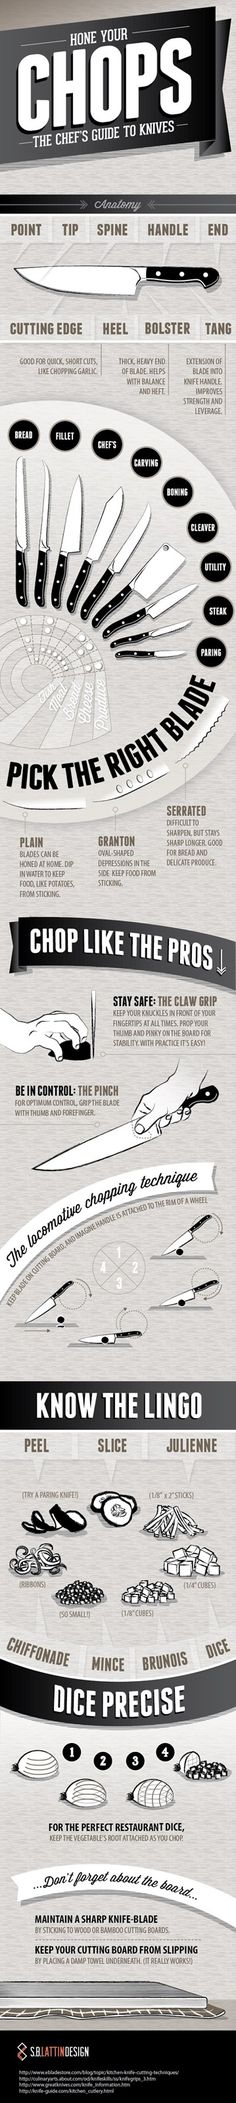 Knife Guide. #food #recipes #kitchentips